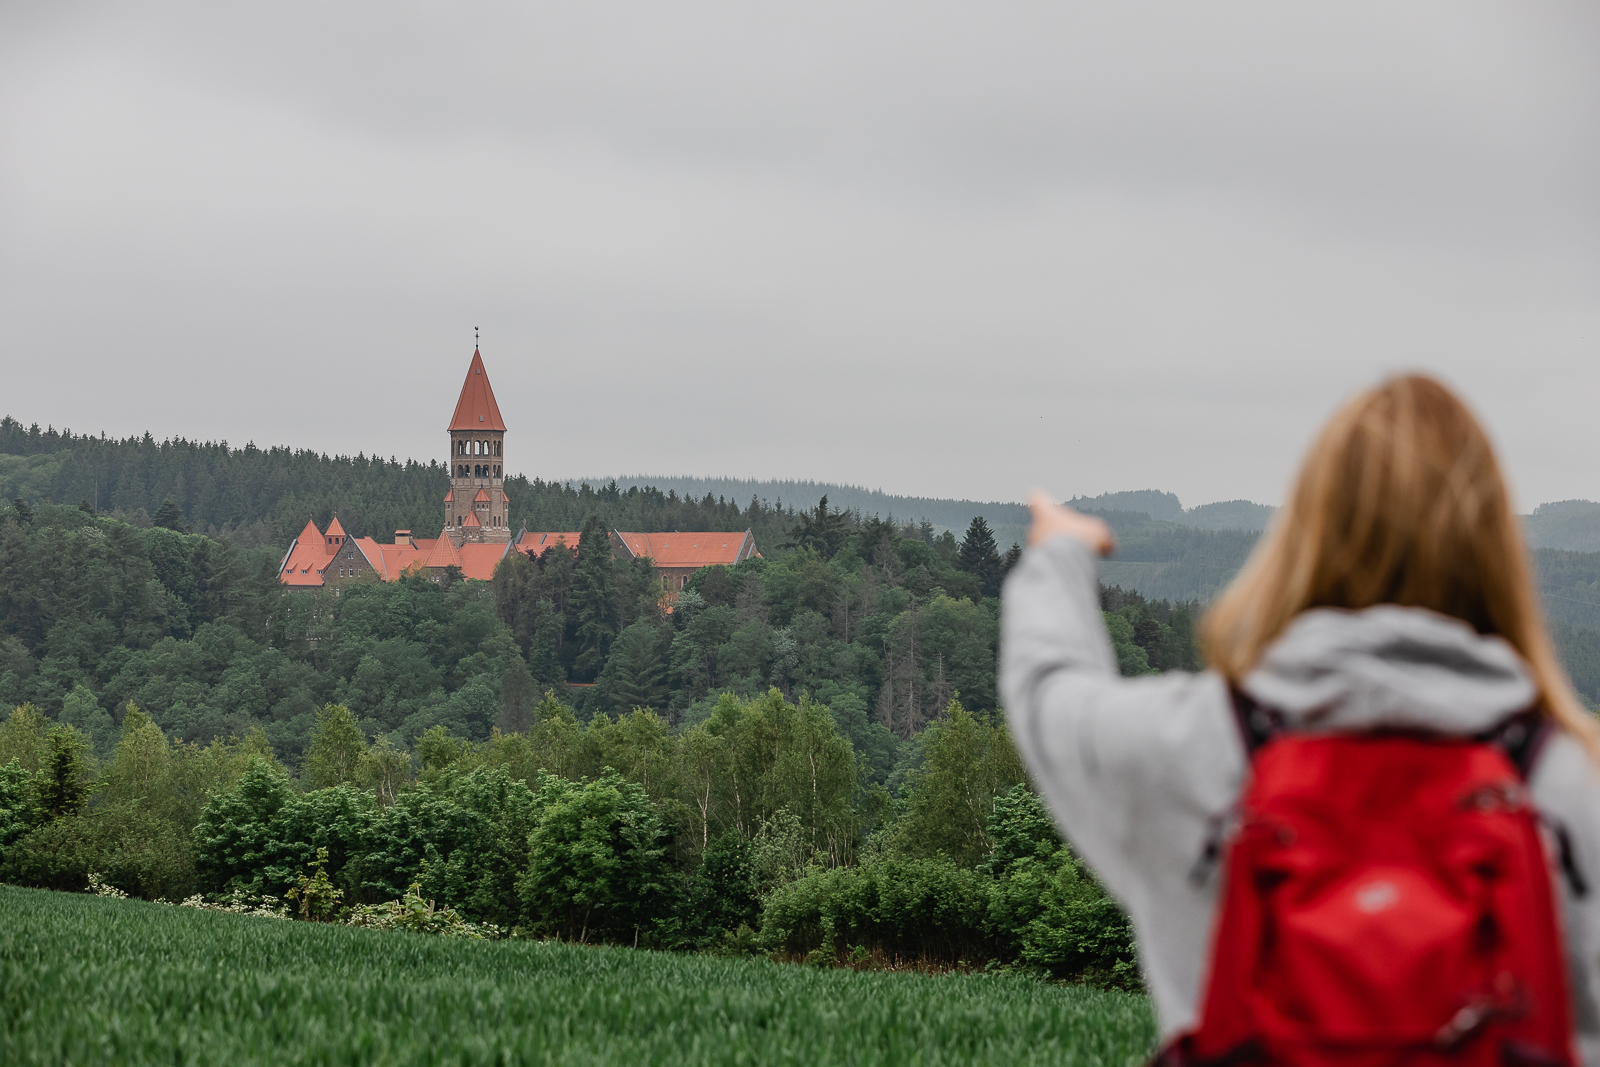 Girl red backpack view of Clervaux abbey